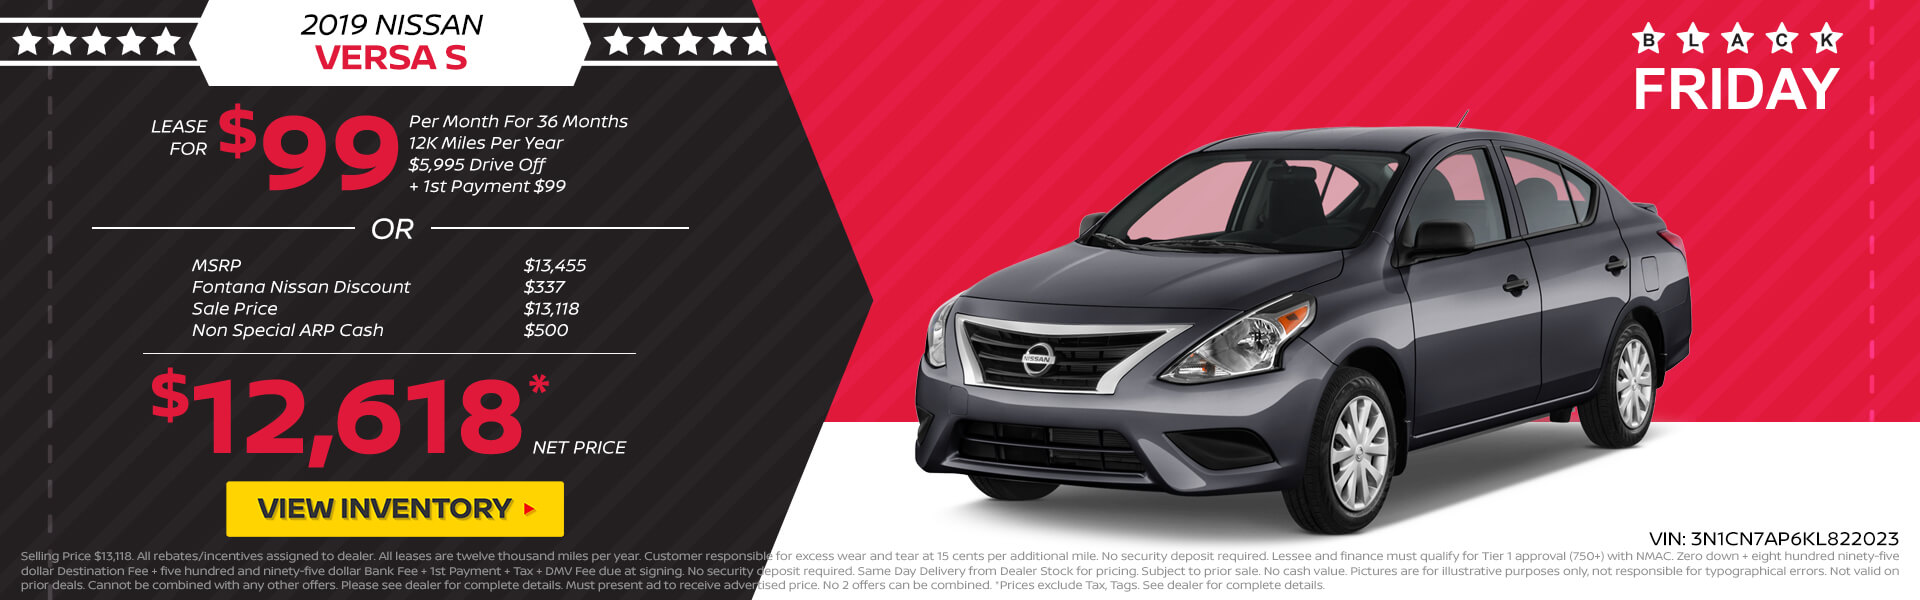 Nissan Versa $99 Lease or $12,618 Purchase